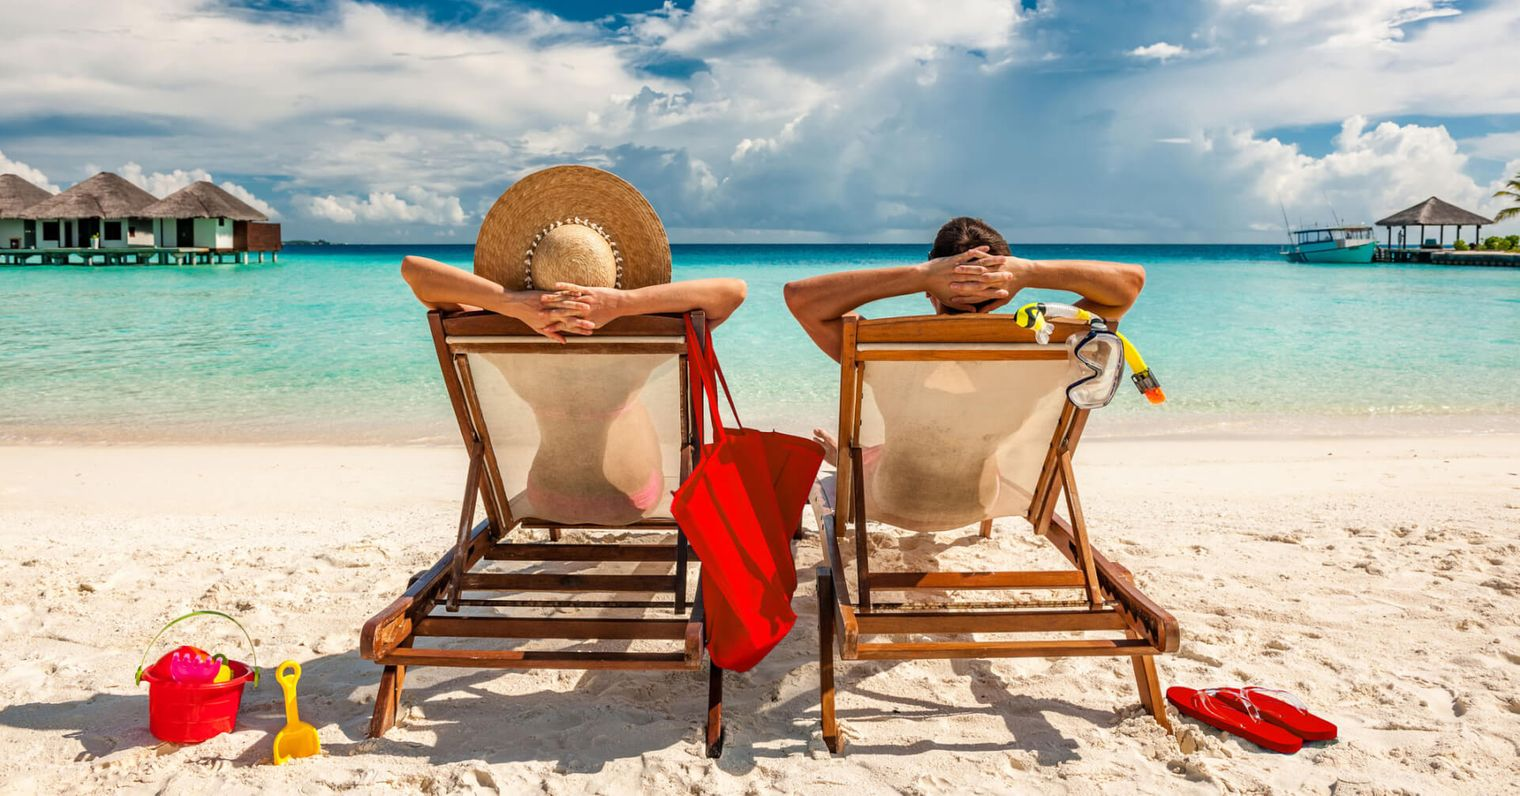 Mortgage-free or a month-long holiday? Which would you choose?